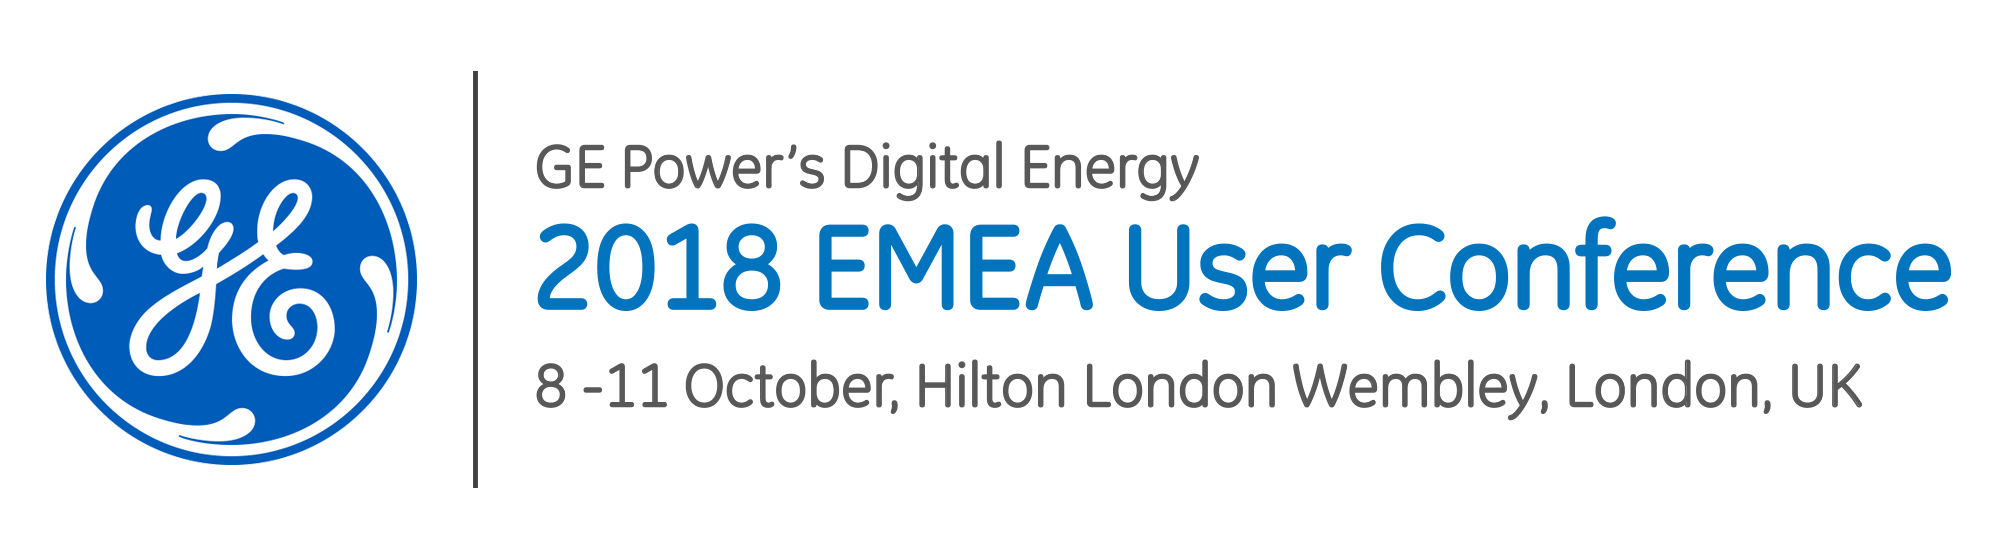 GE Power's Digital Energy 2018 EMEA User Conference